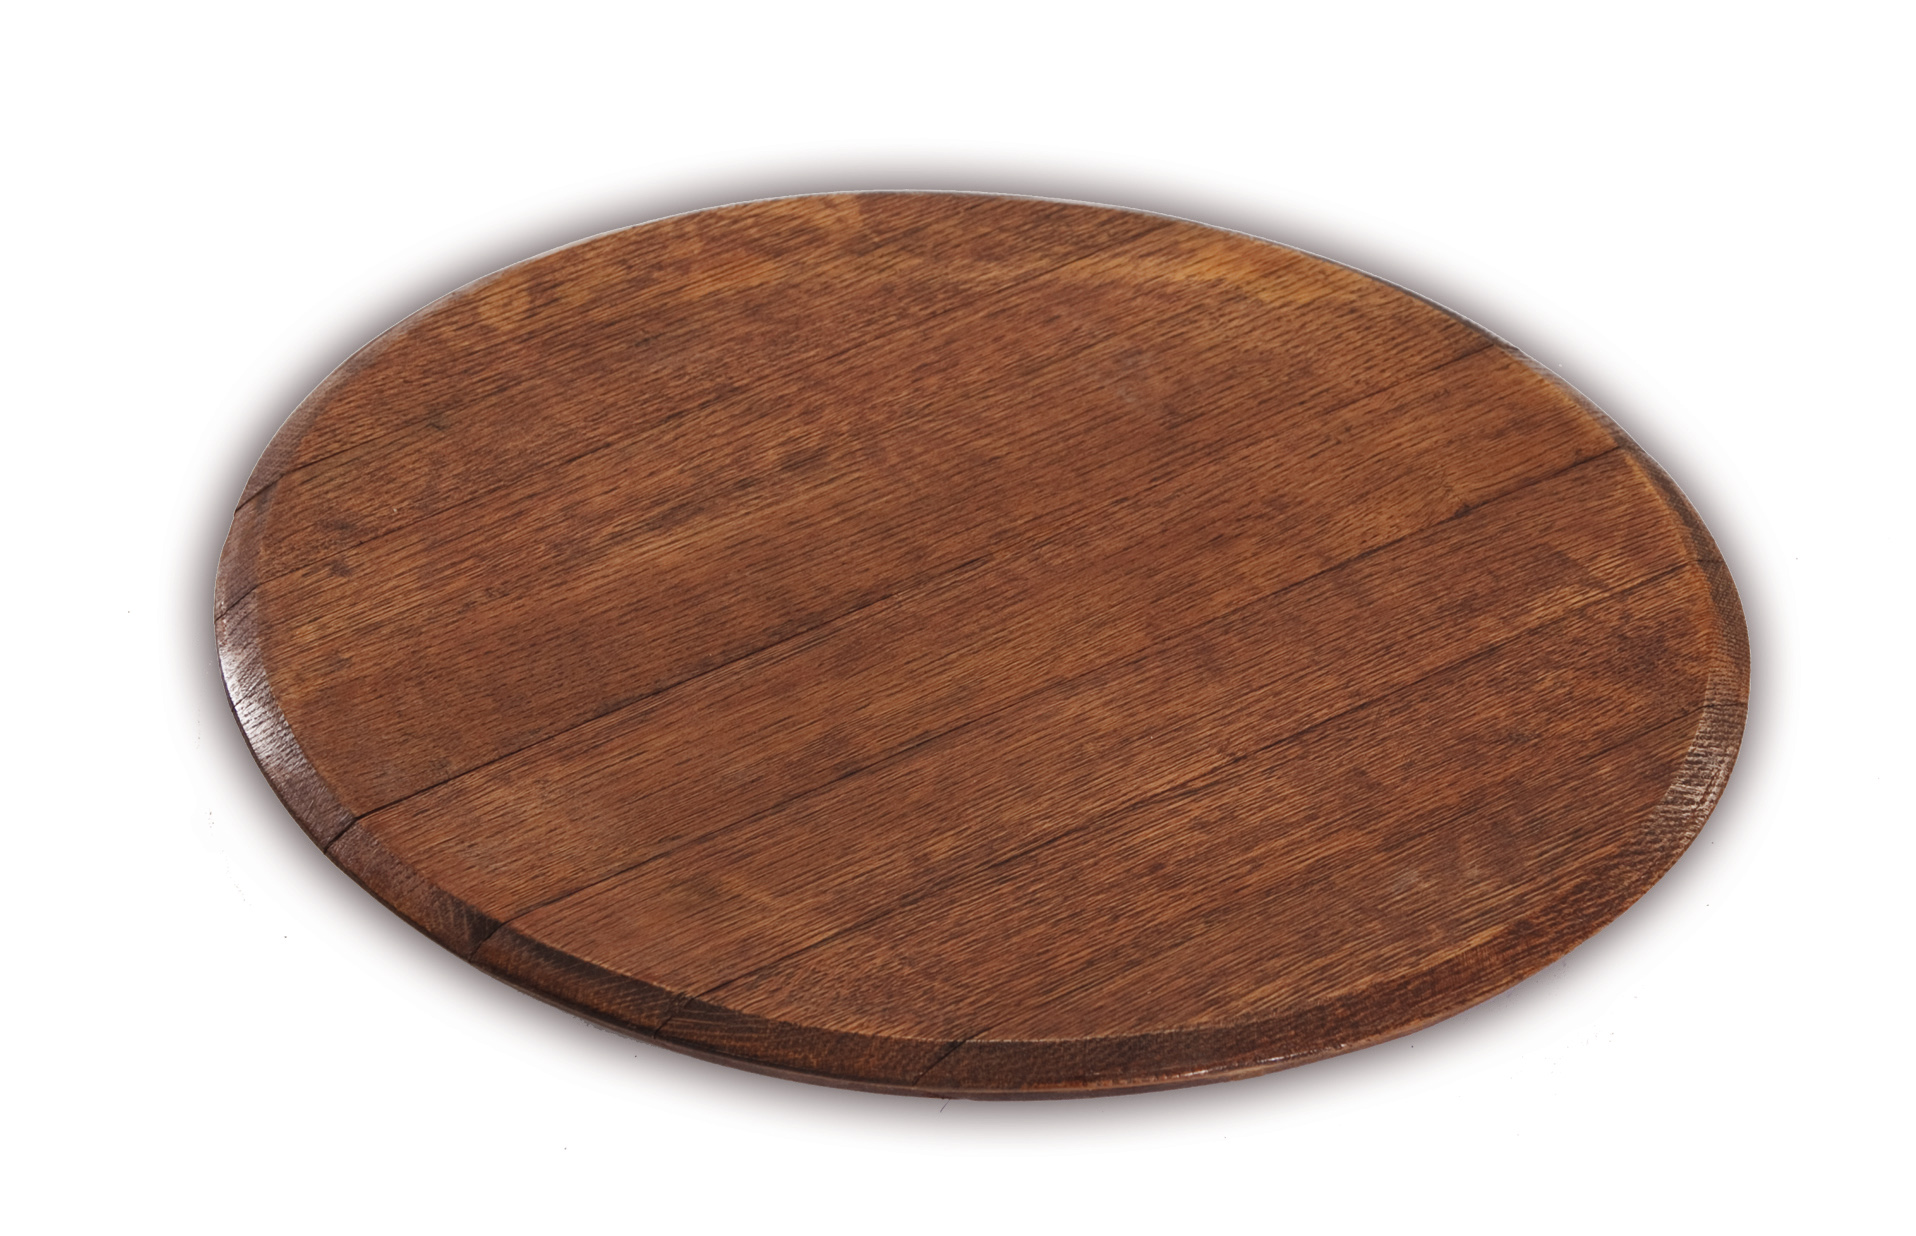 Classy wine barrel lazy susan for furniture accessories ideas with personalized wine barrel lazy susan